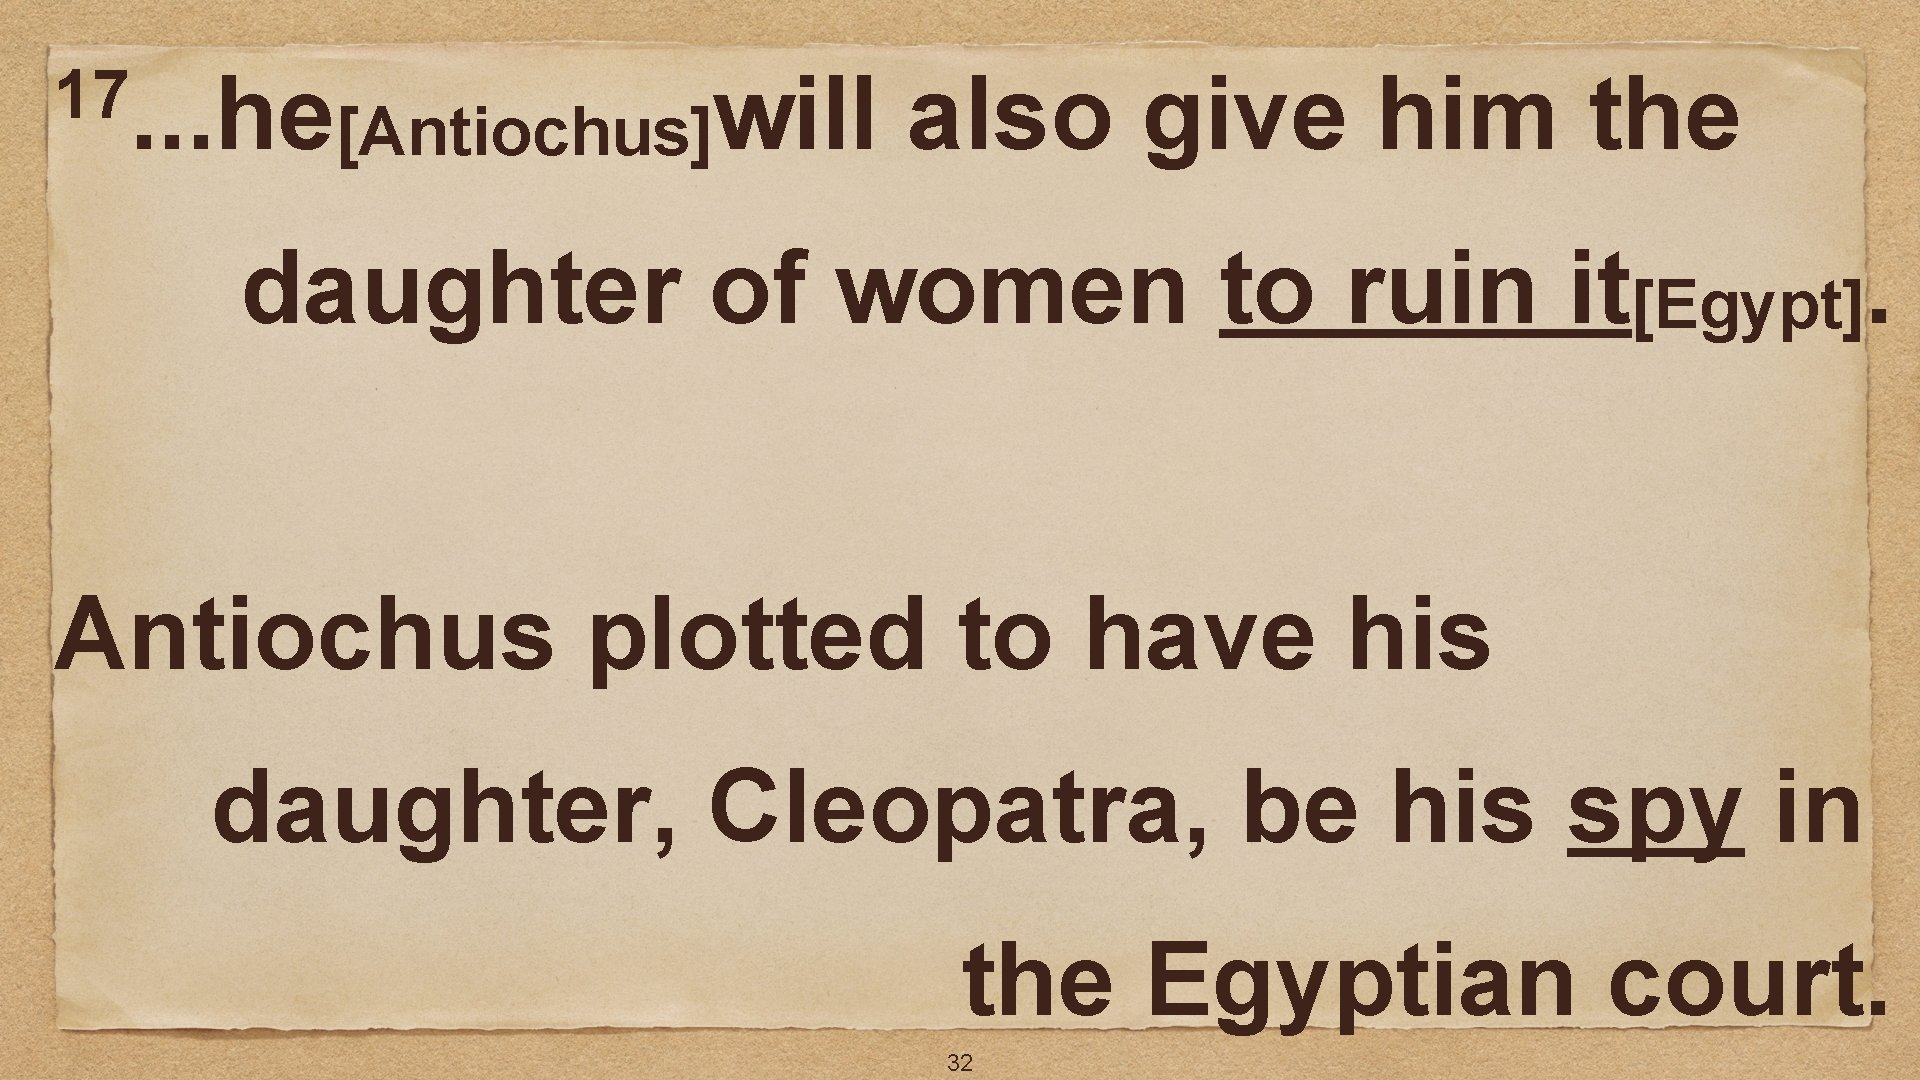 17. . . he [Antiochus]will also give him the daughter of women to ruin